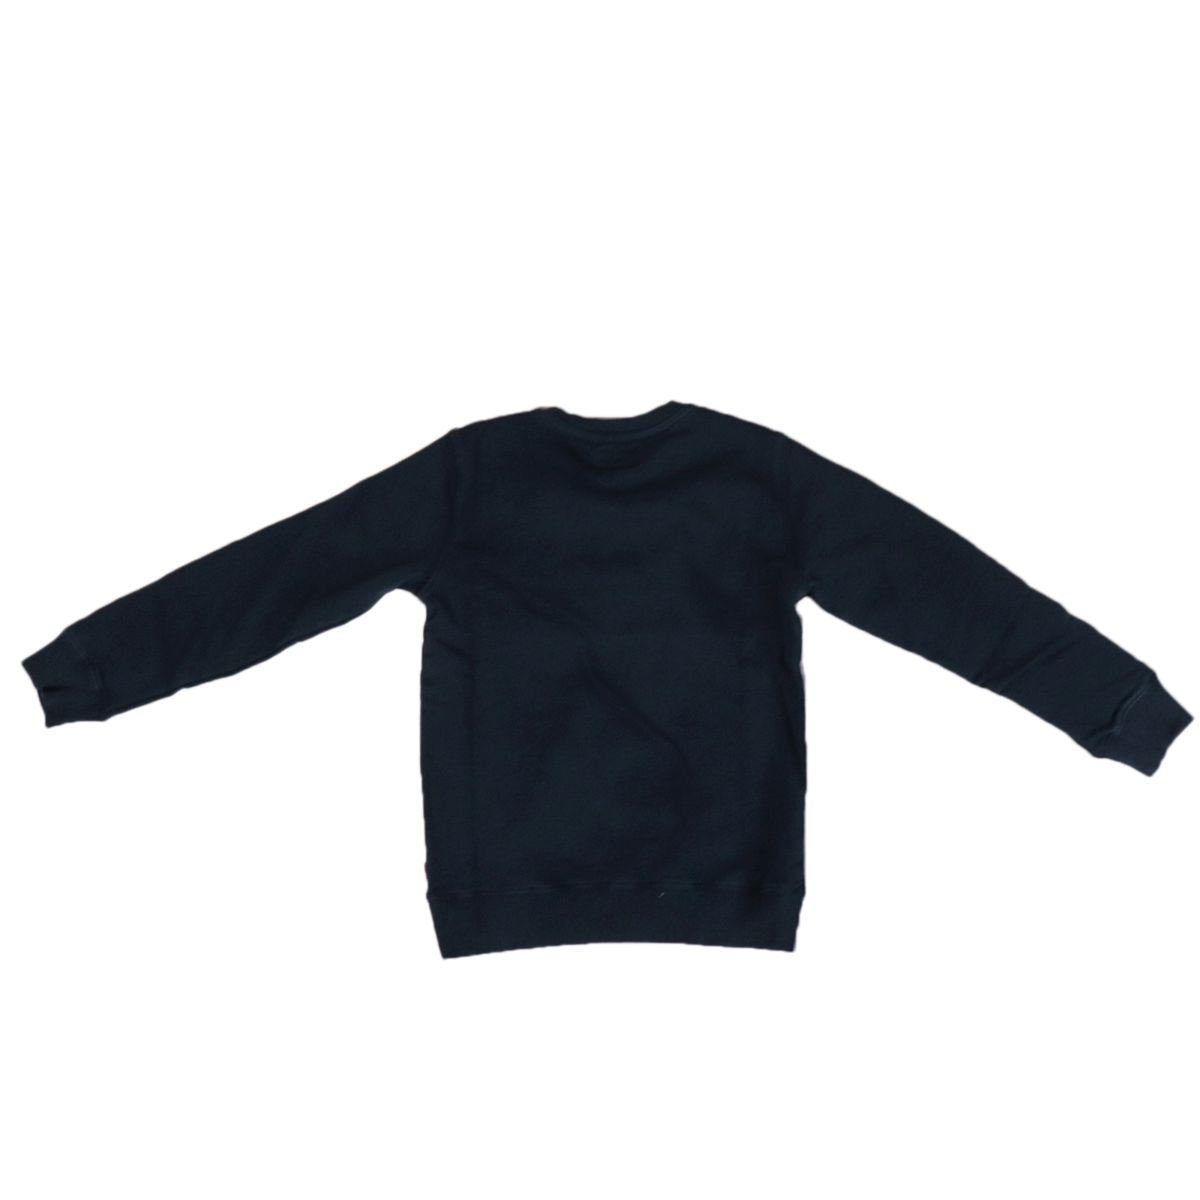 Crewneck cotton sweatshirt with contrasting lettering print Blue Woolrich